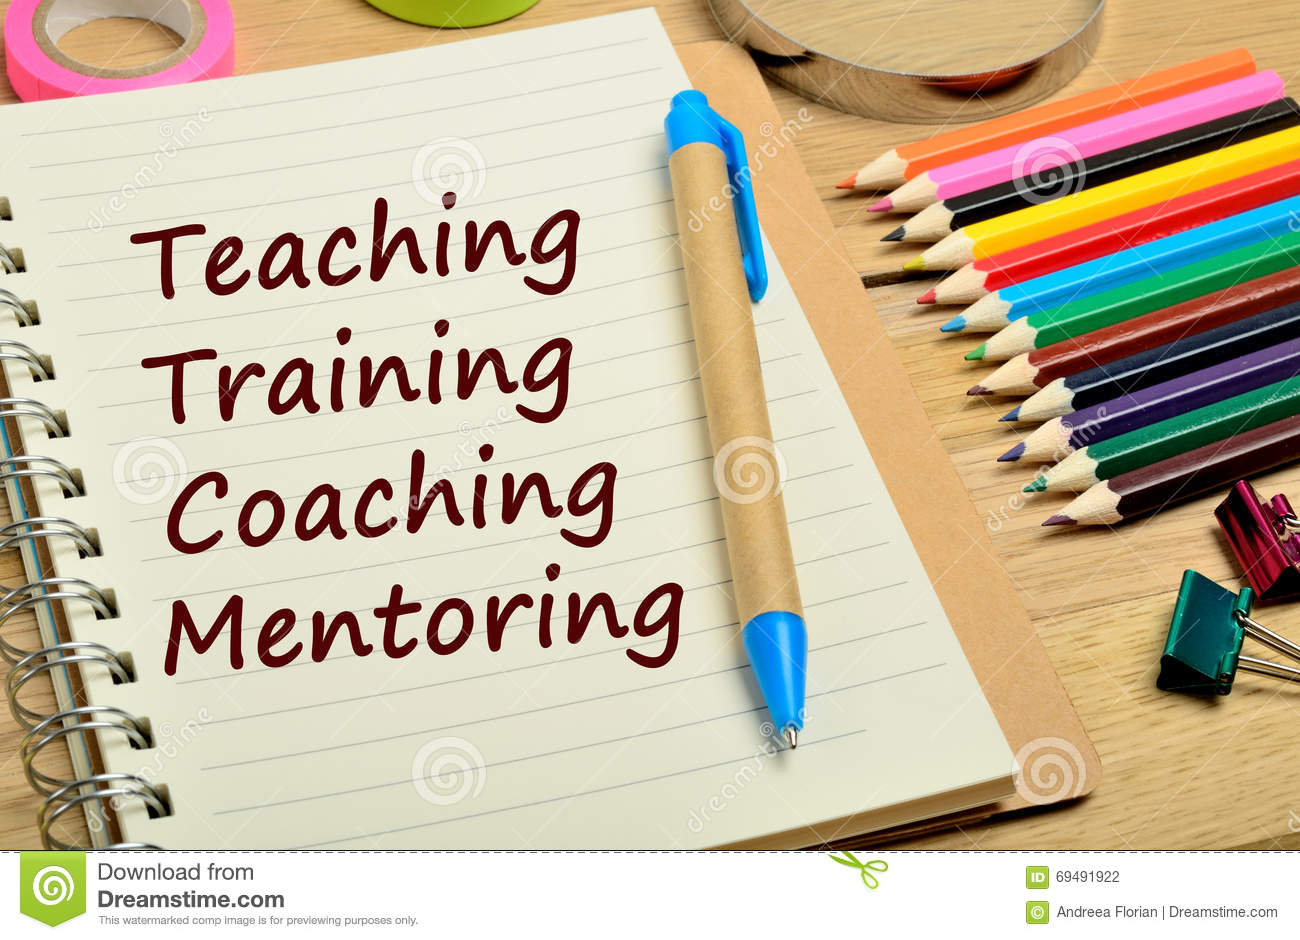 Teaching Training Coaching Mentoring words